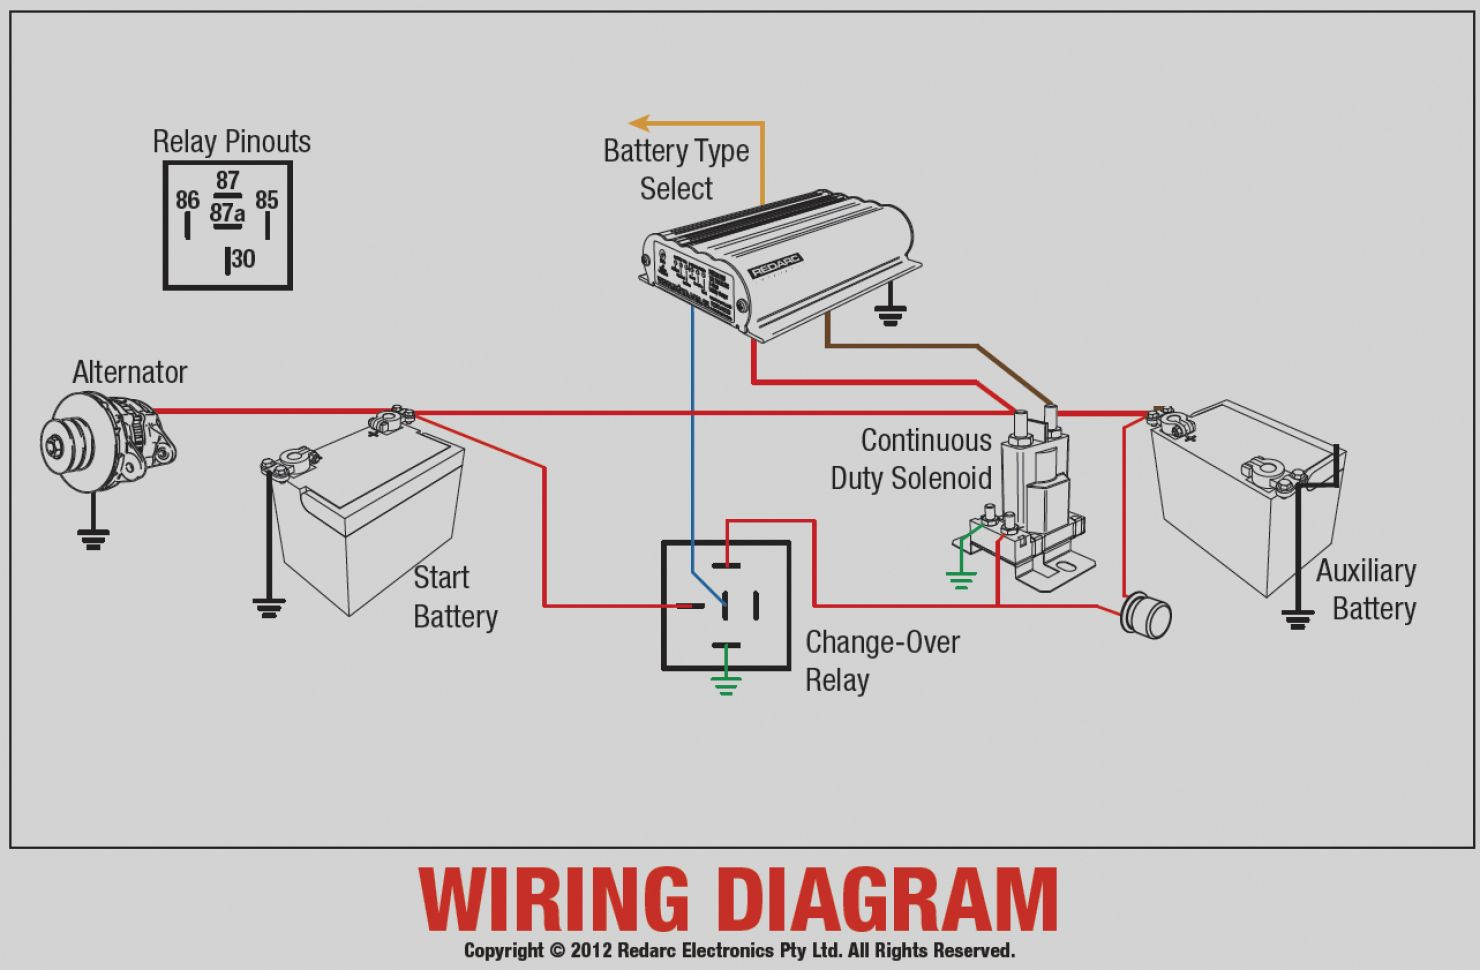 tjm dual battery system wiring diagram central heating pump overrun for manual e books latest red arc redarc bcdc1225lv